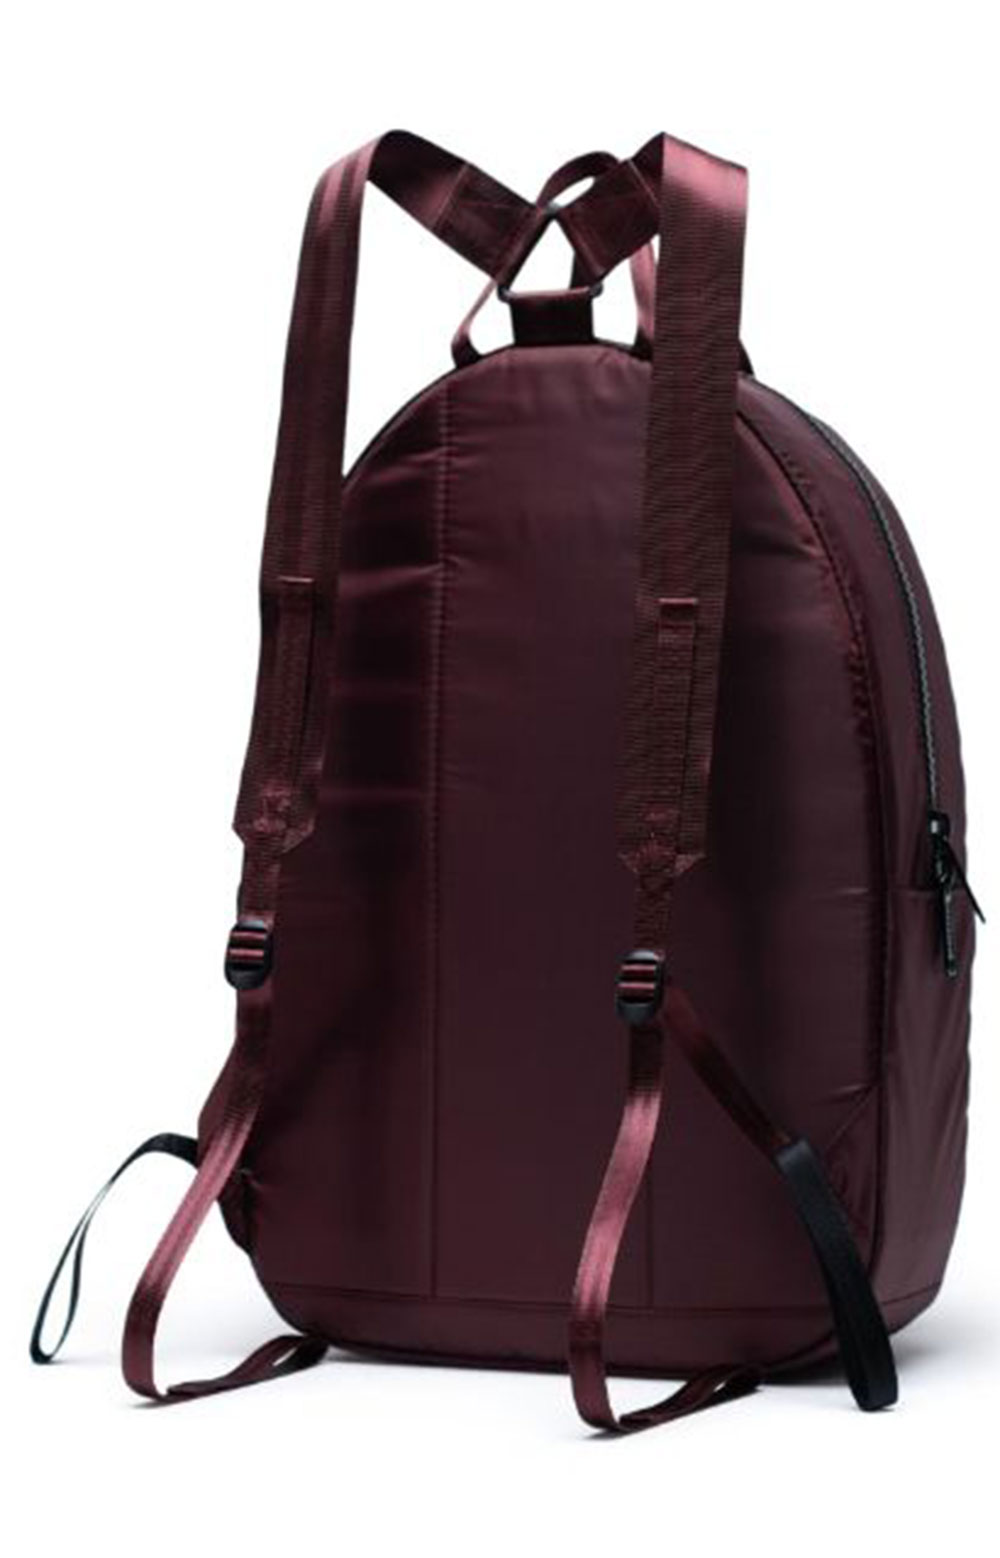 HS6 Backpack Studio - Plum/Black 4